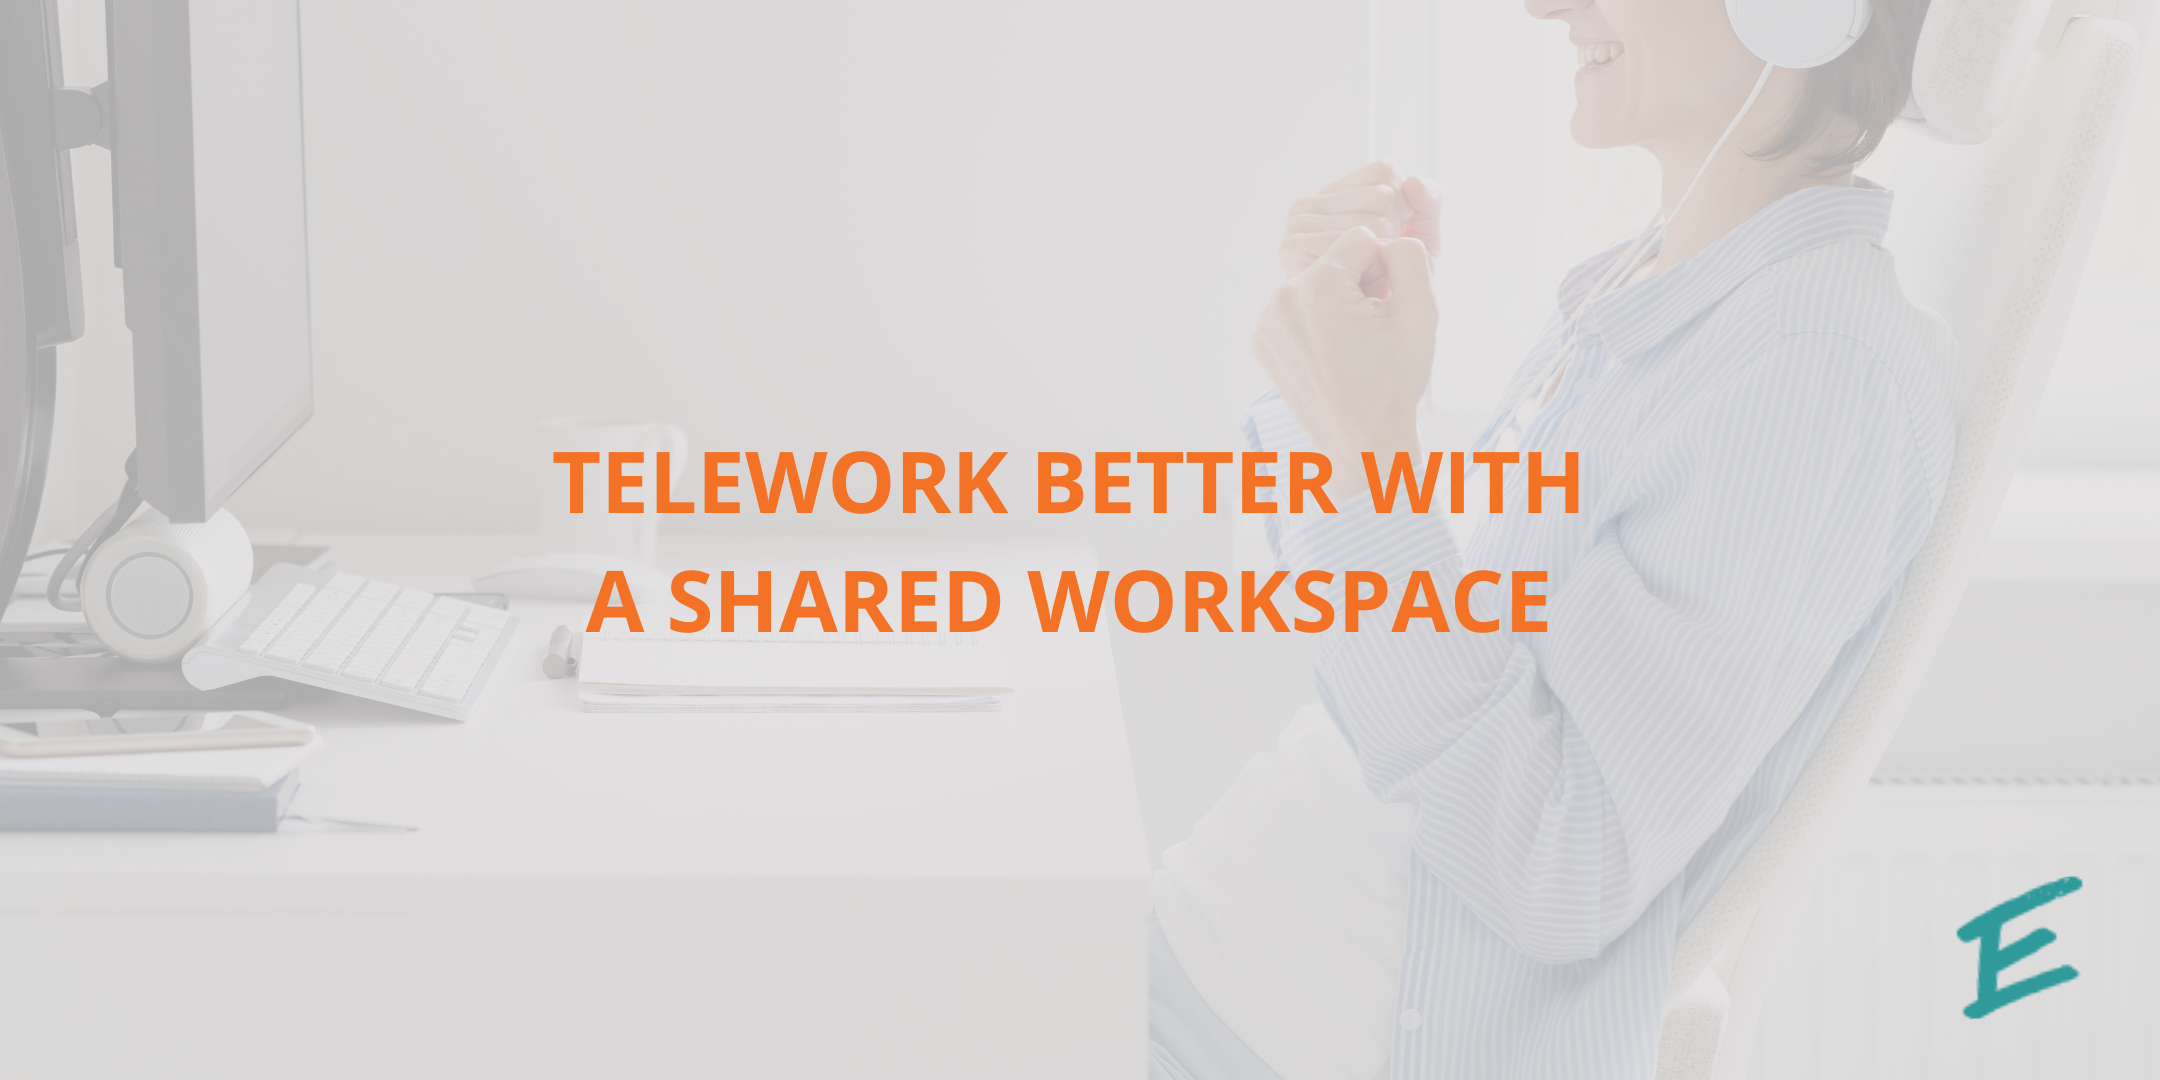 telework-better-with-a-shared-workspace